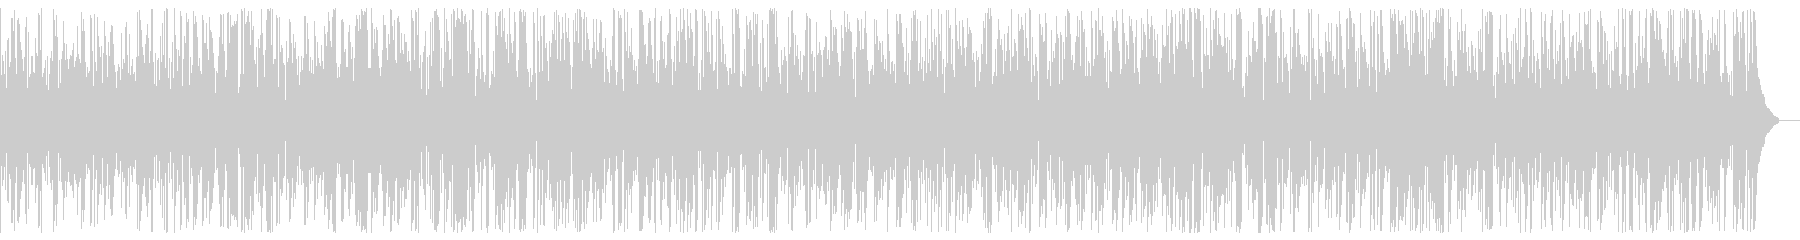 Fast cool fashionable jazz piano BGM's unreproduced waveform